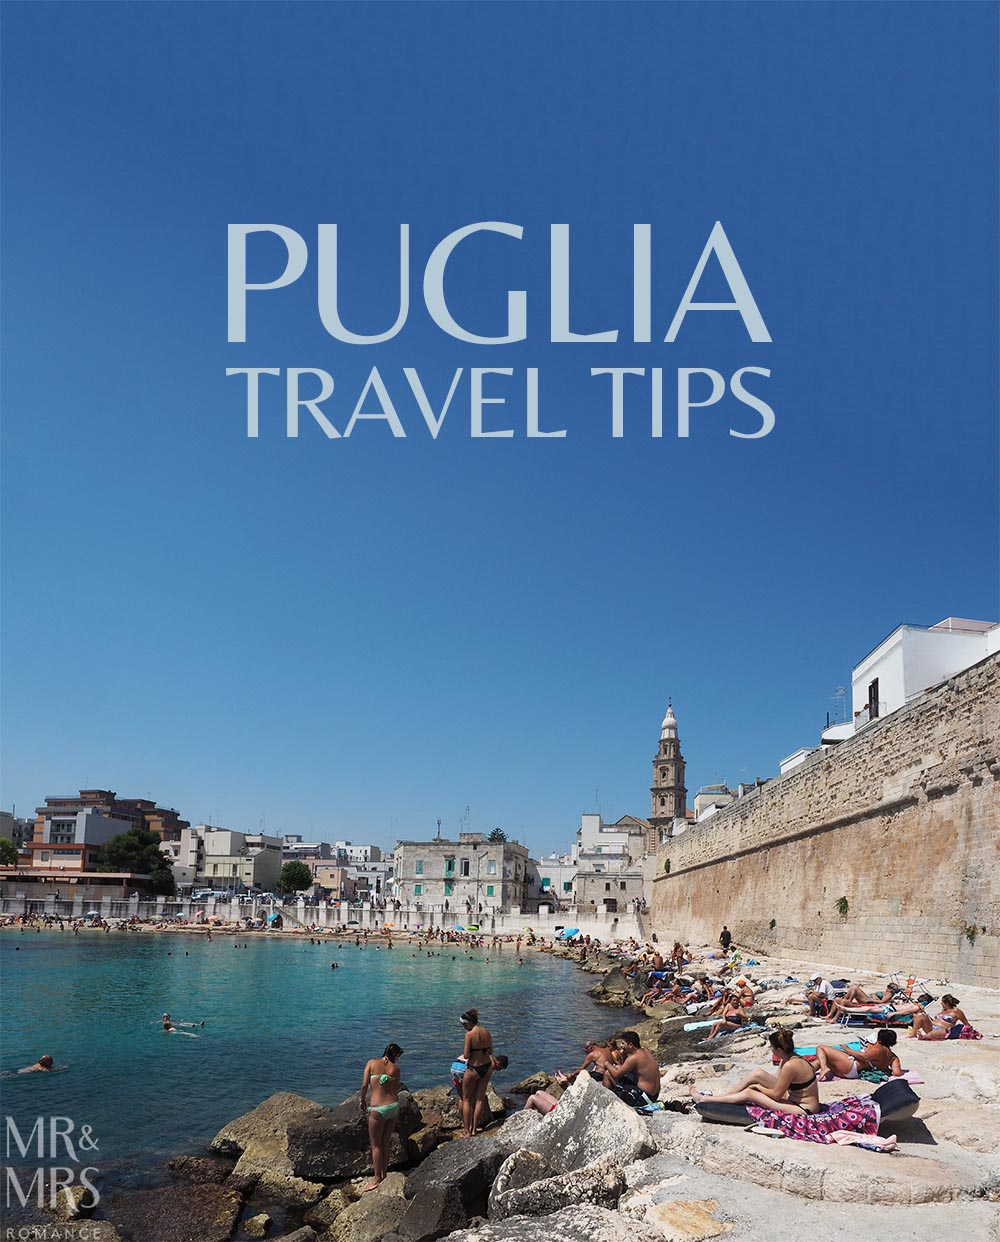 Puglia travel tips - 11 reasons to visit Puglia, Italy